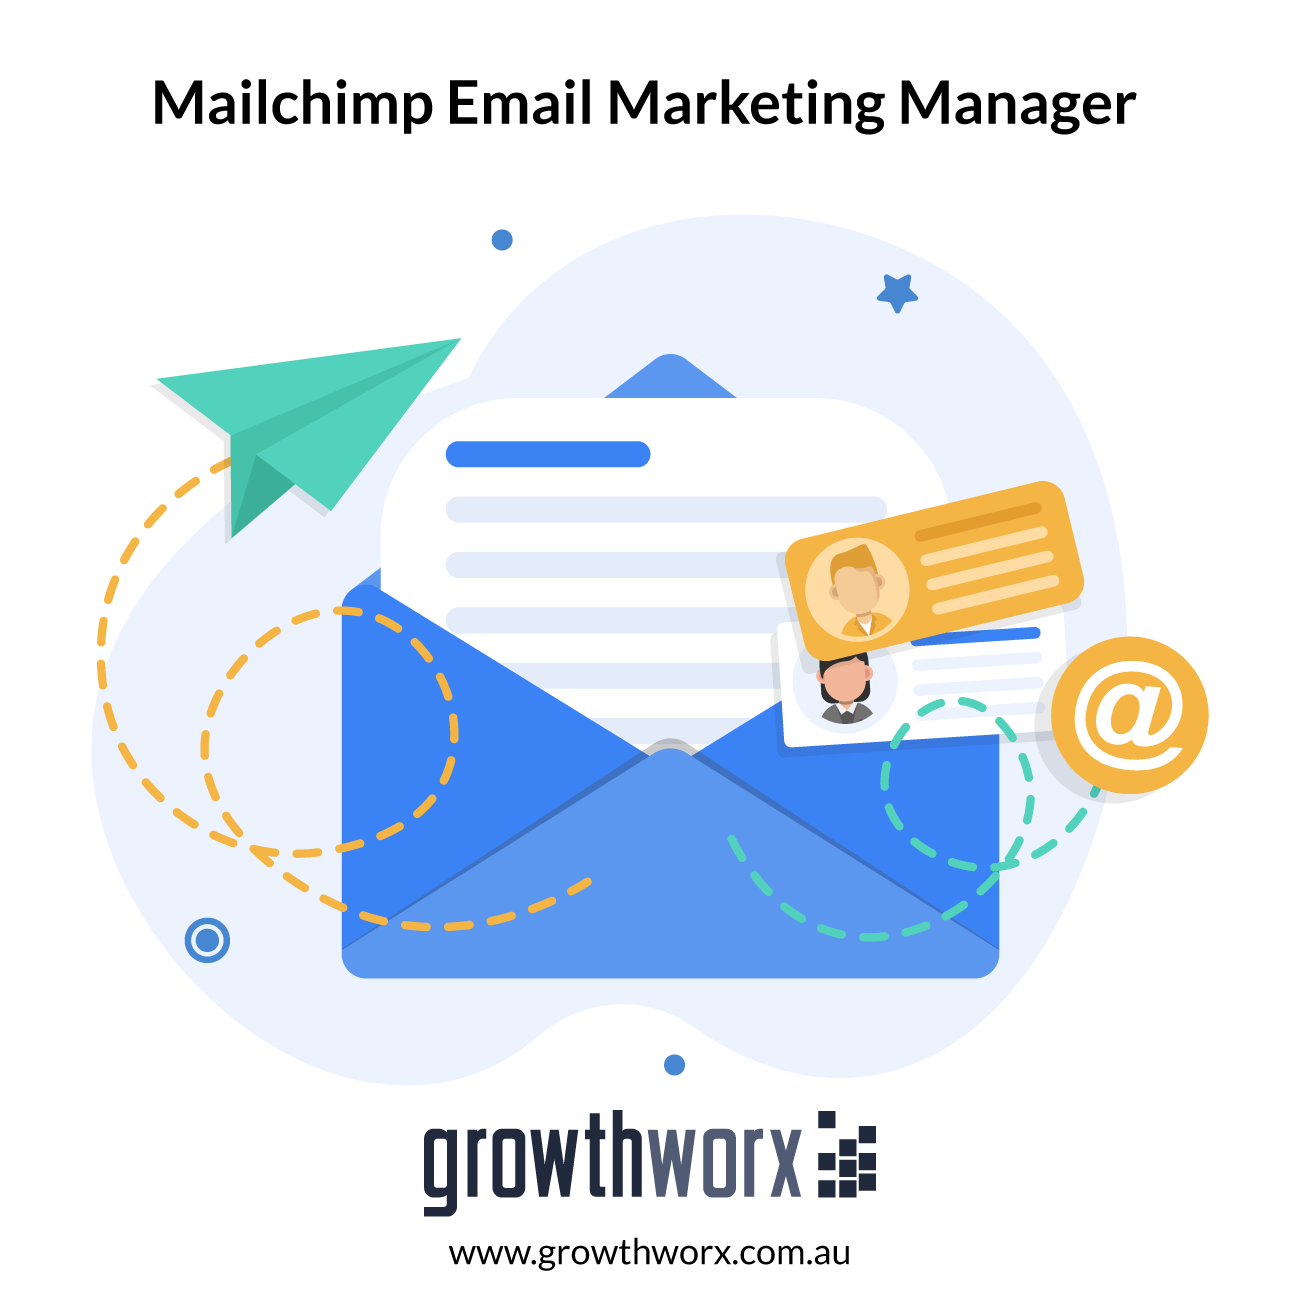 I will be your email marketing manager on mailchimp 1